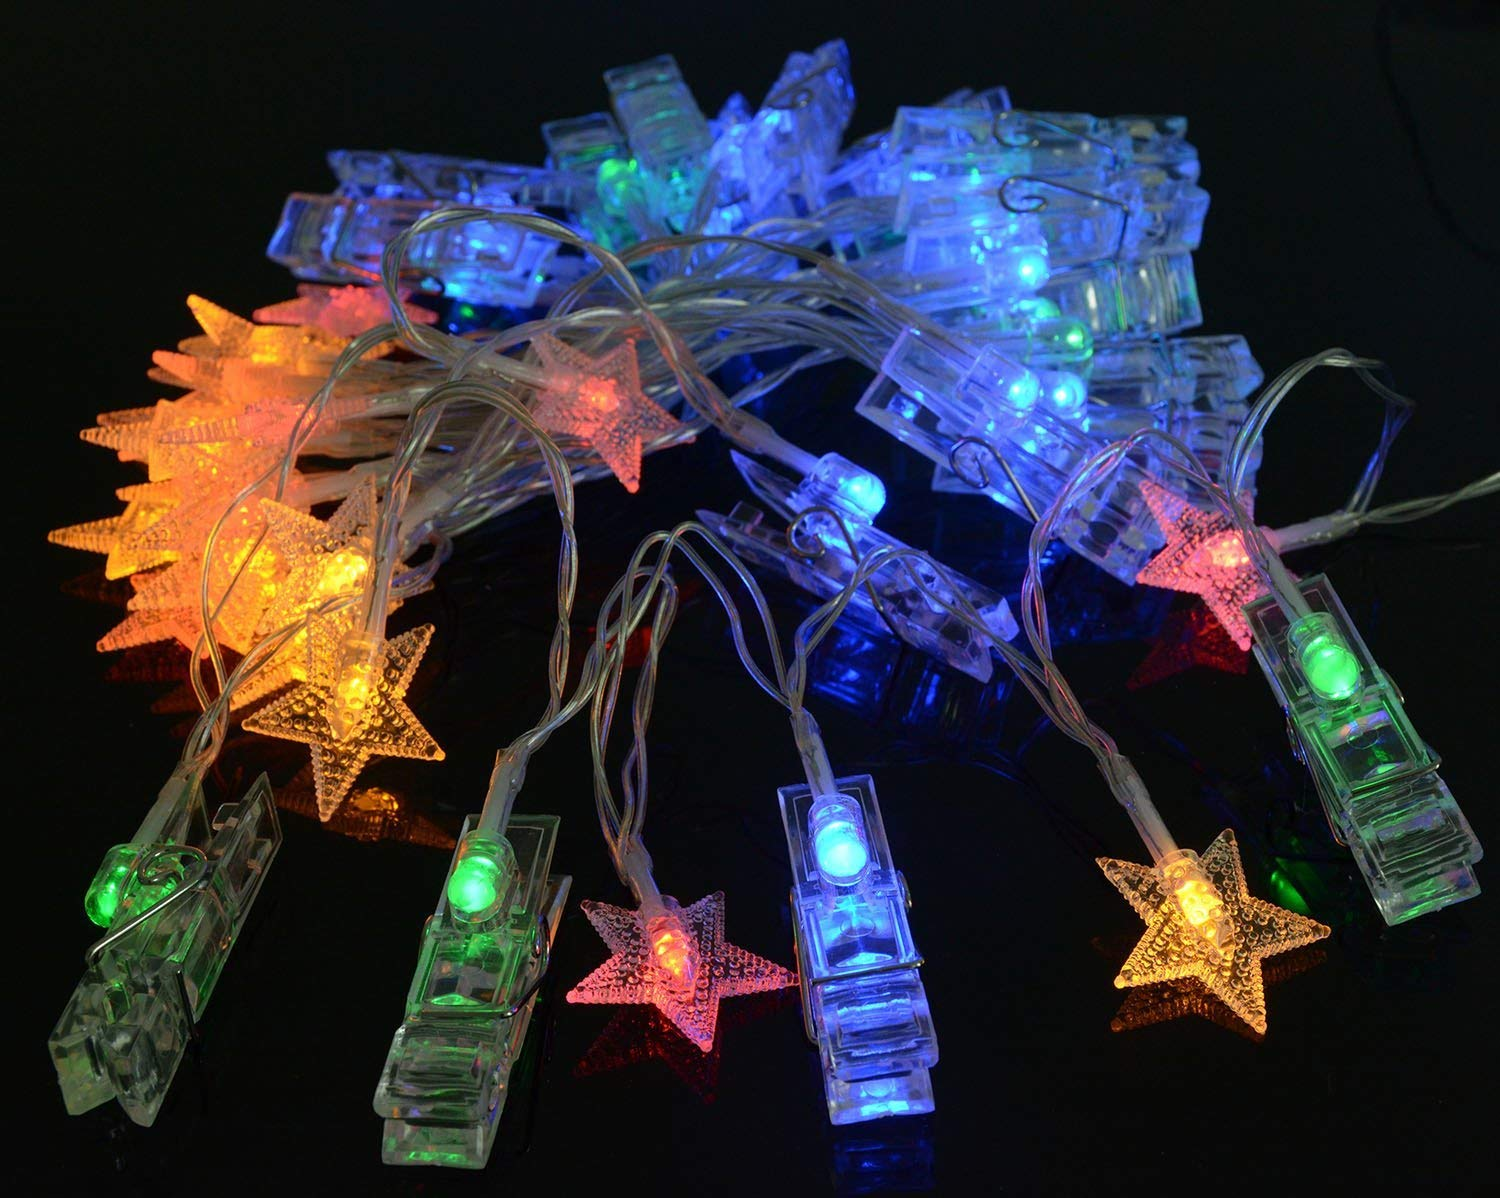 Viewpick Multicolor LED Photo Clips Star Twinkle String Lights 40 LEDs-20 Clip Lights and 20 Star Lights Battery Operated Fairy Lights with 2 Modes for Hanging Photos Artworks Cards Party Christmas